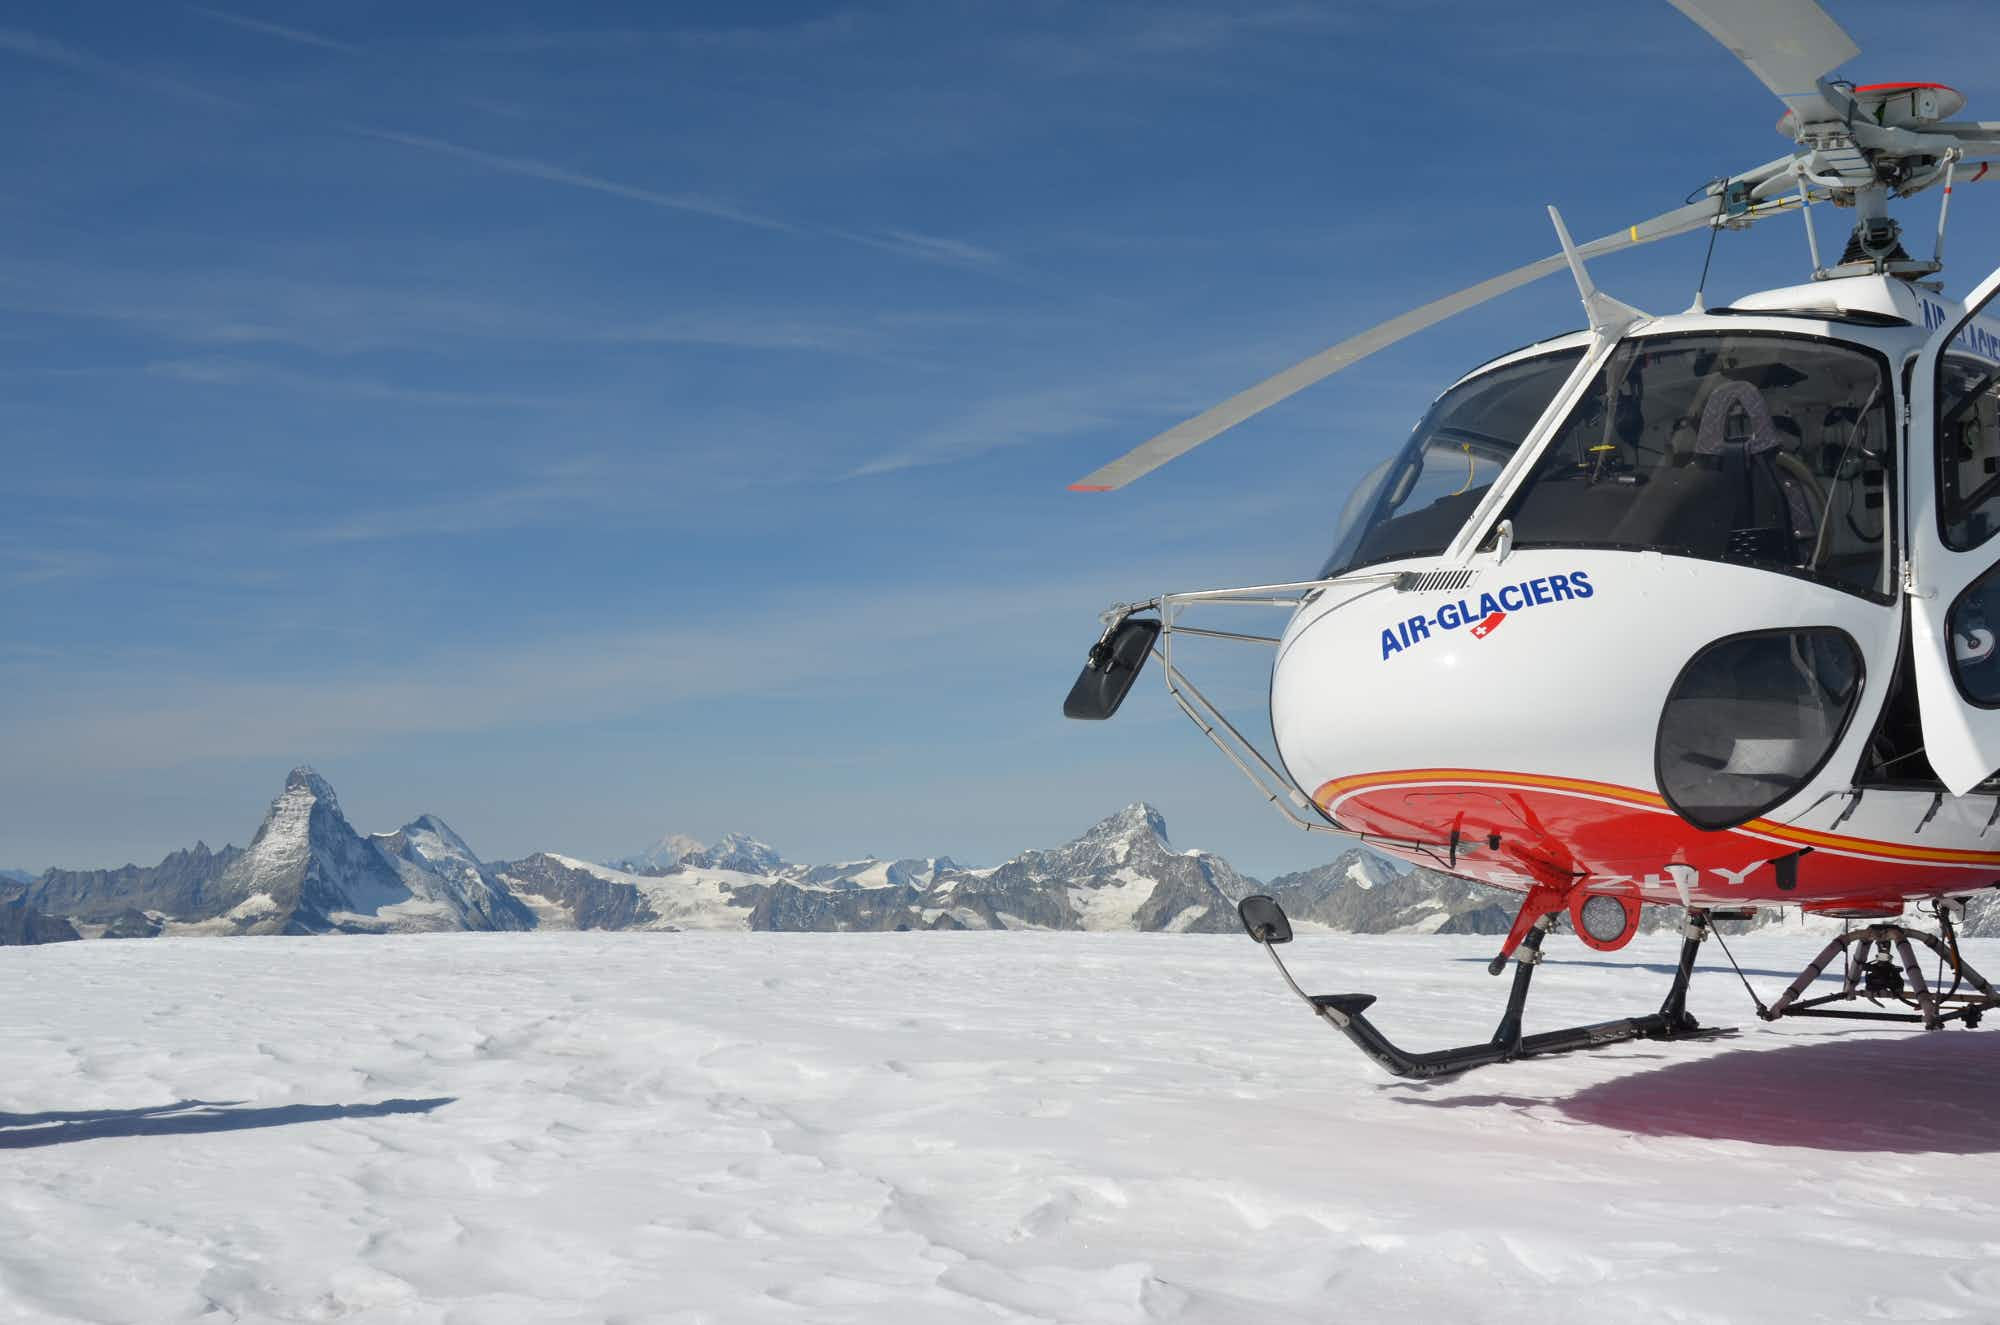 Have lunch on top of a Swiss glacier this winter...and get there by helicopter